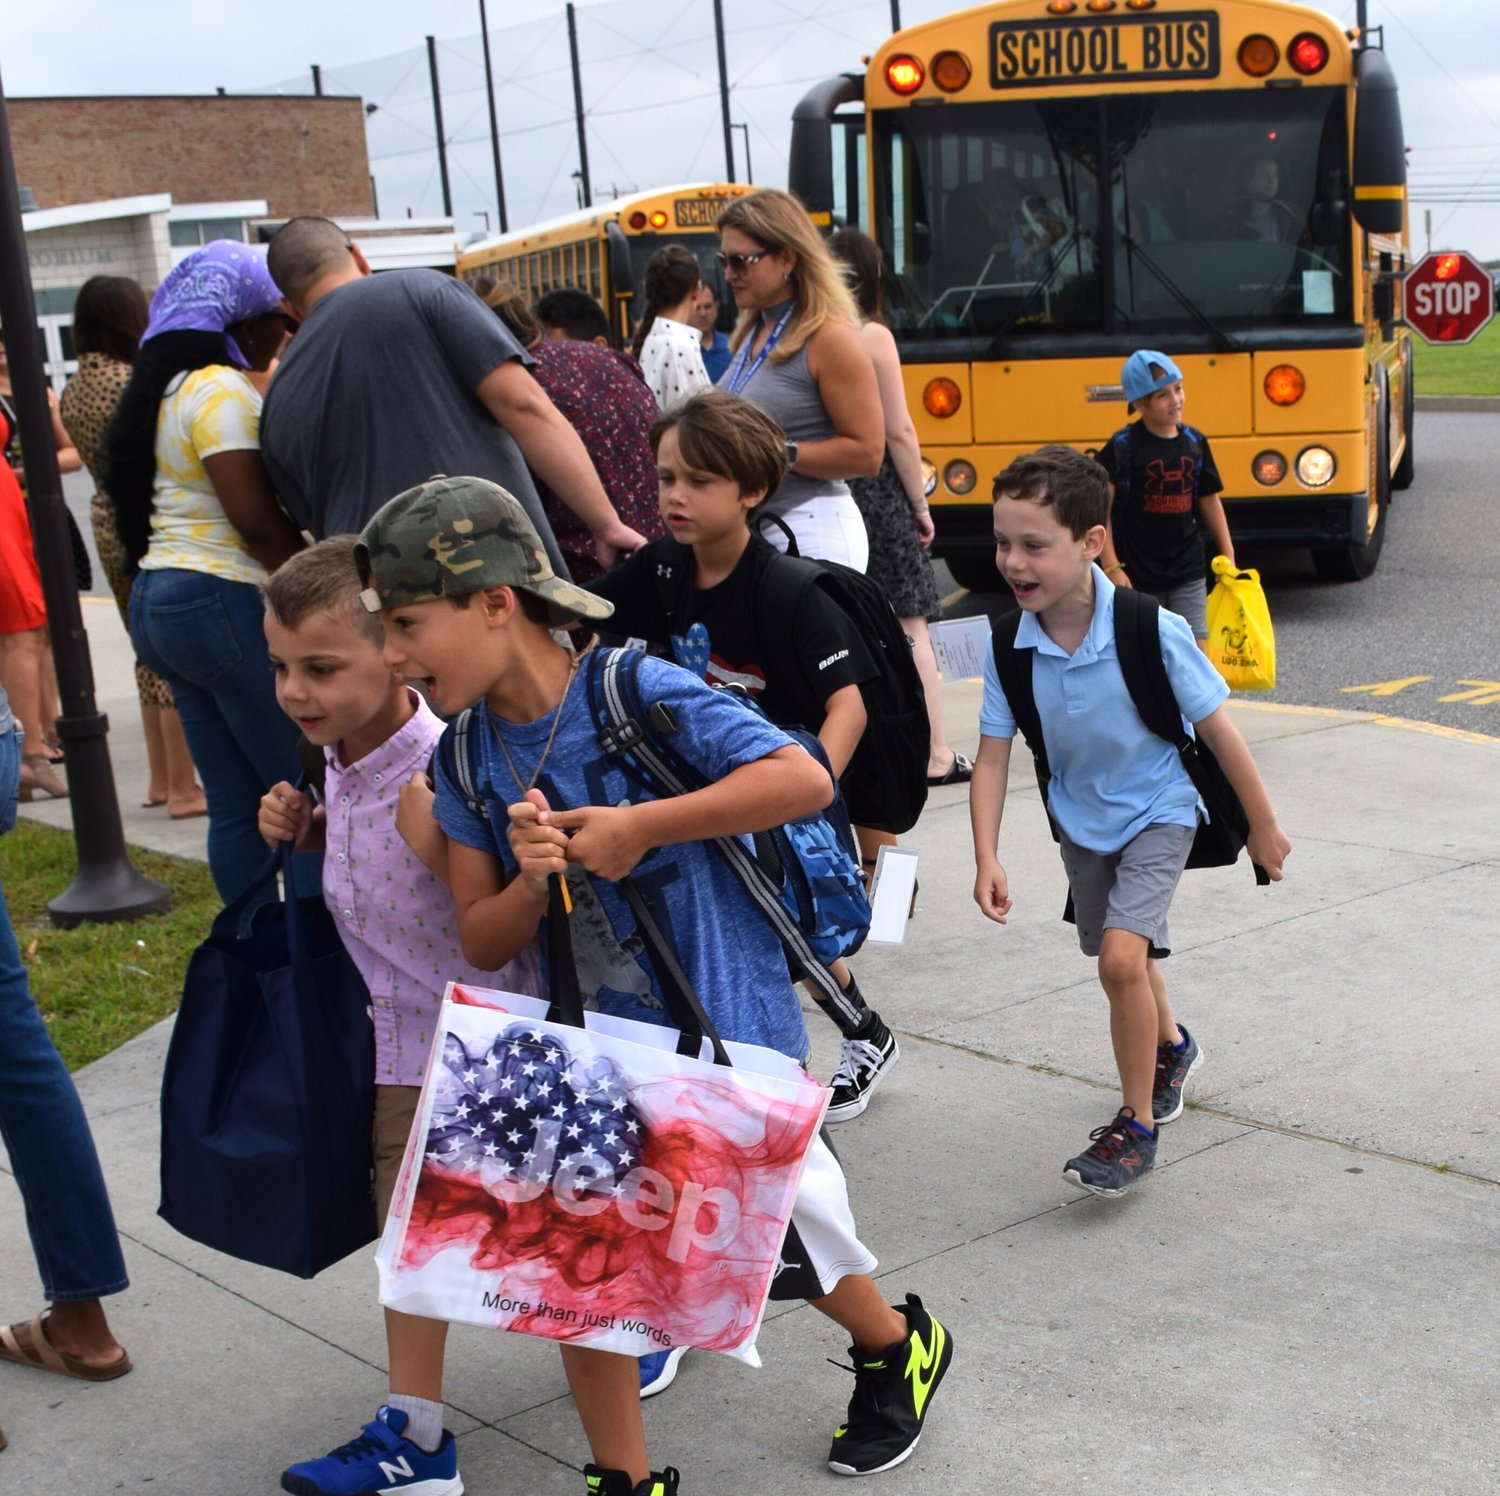 Lido Elementary School students were excited to return to school for the 2019-20 school year.